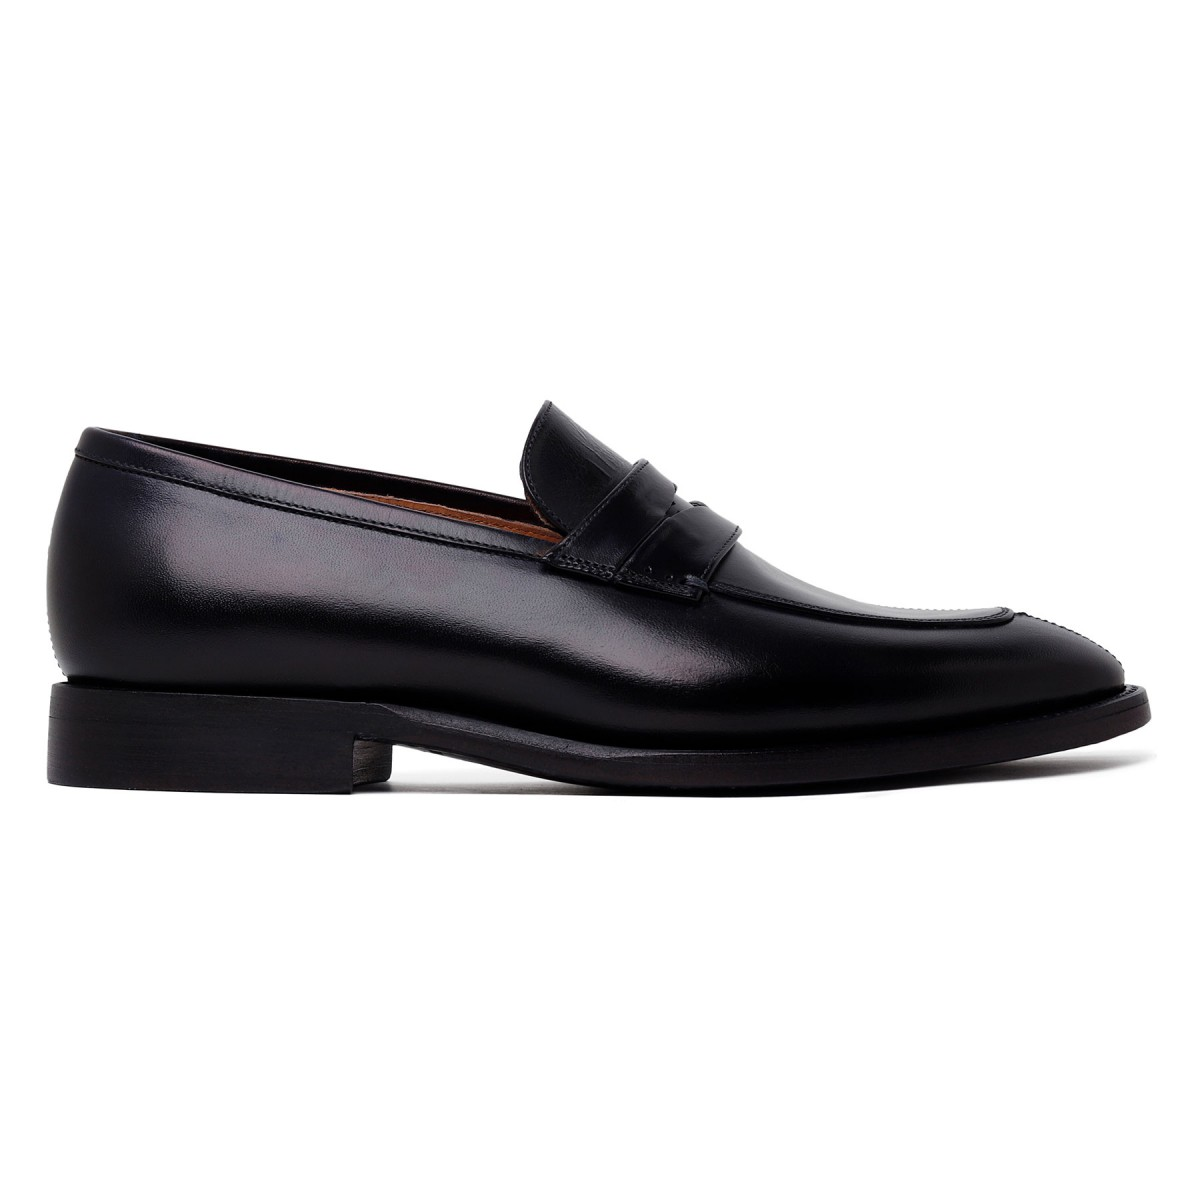 Marsiglia navy leather loafers